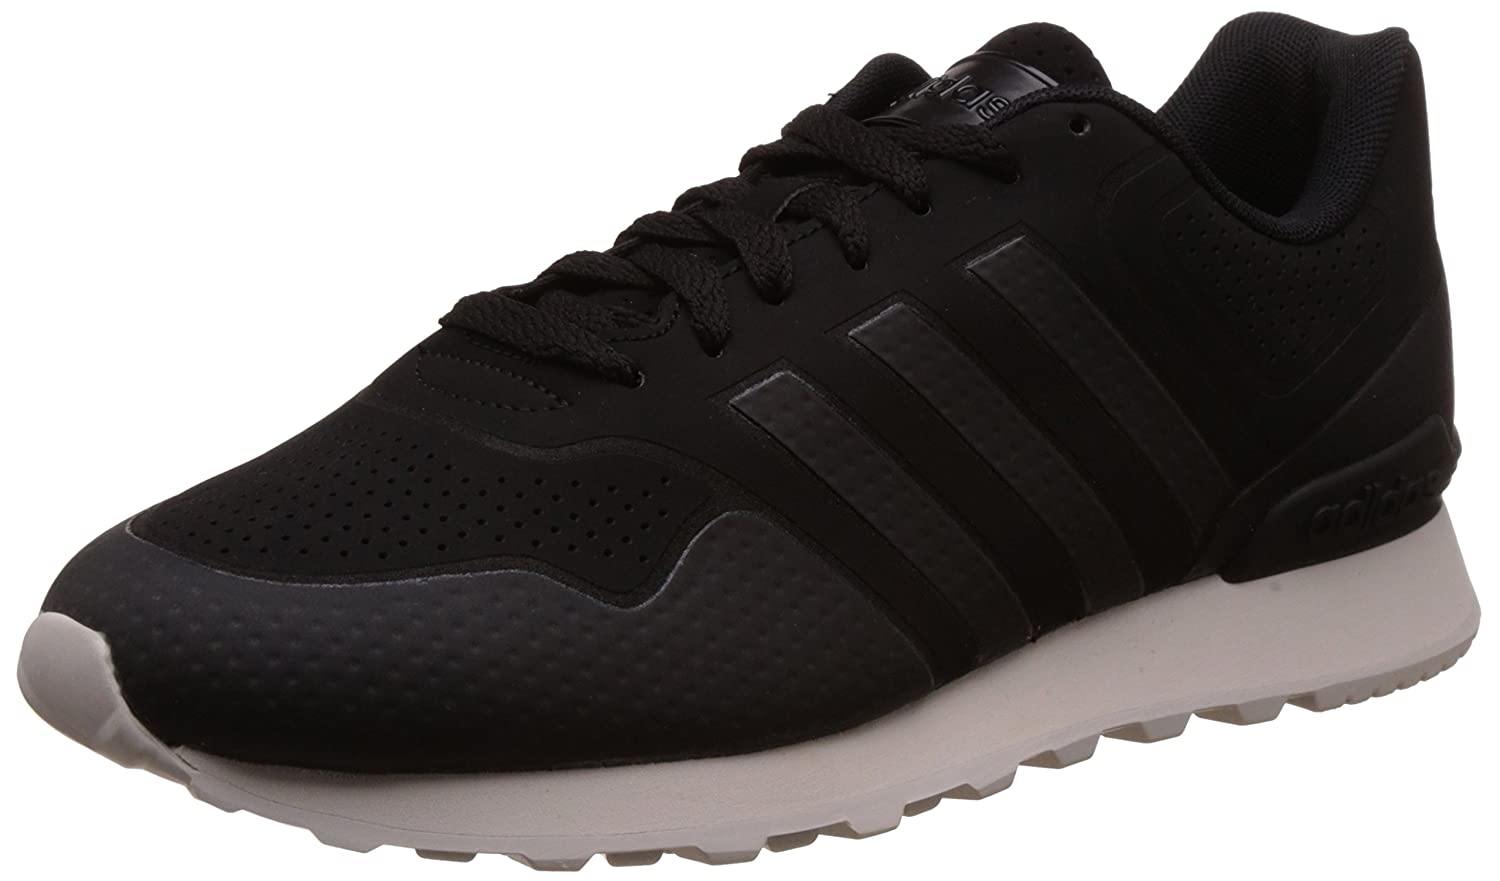 Buy adidas neo Men's 10K Casual Leather